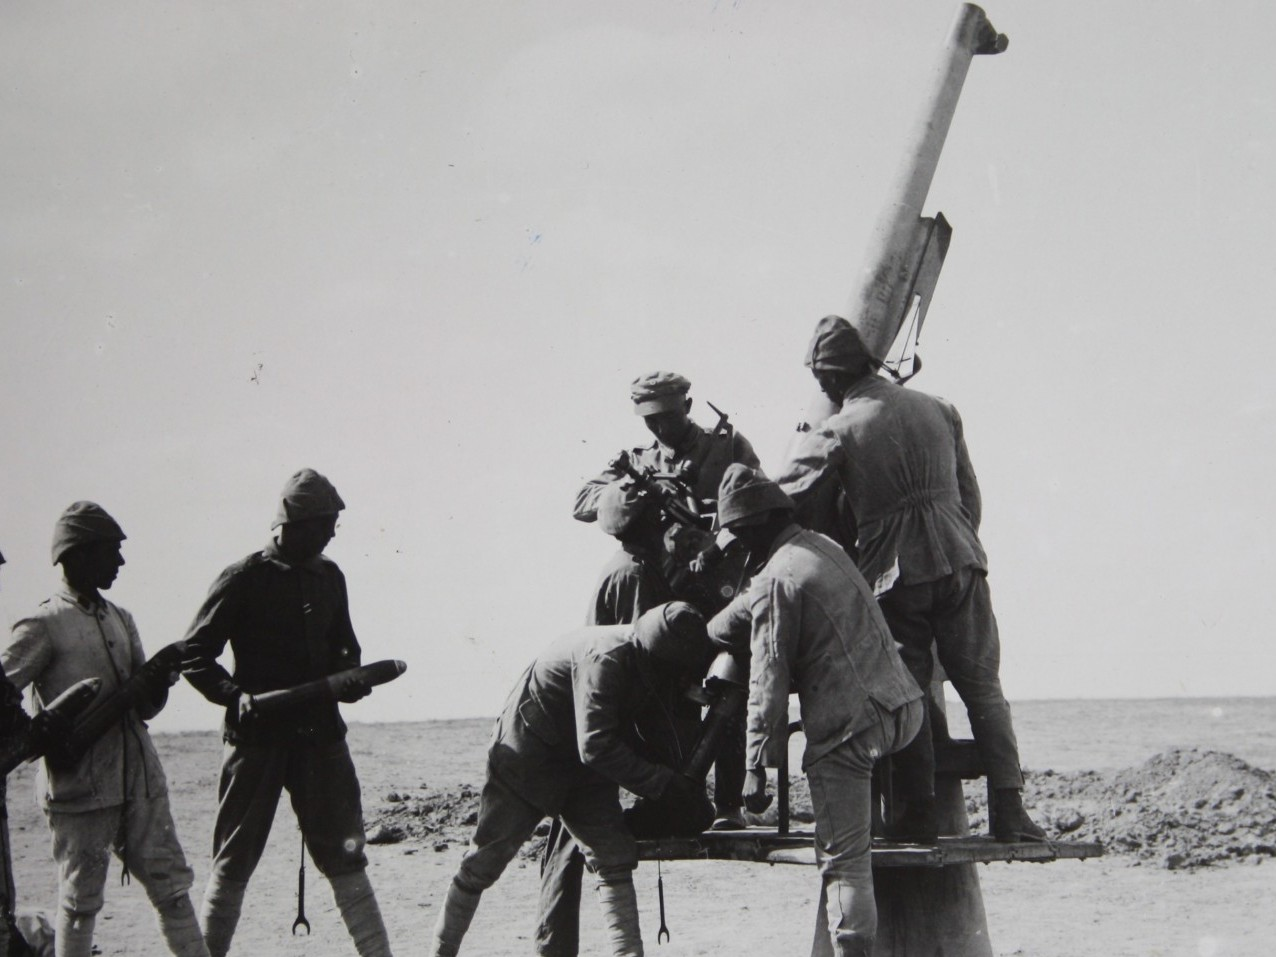 First World War in Israel. Source: National Library of Israel, Public domain.